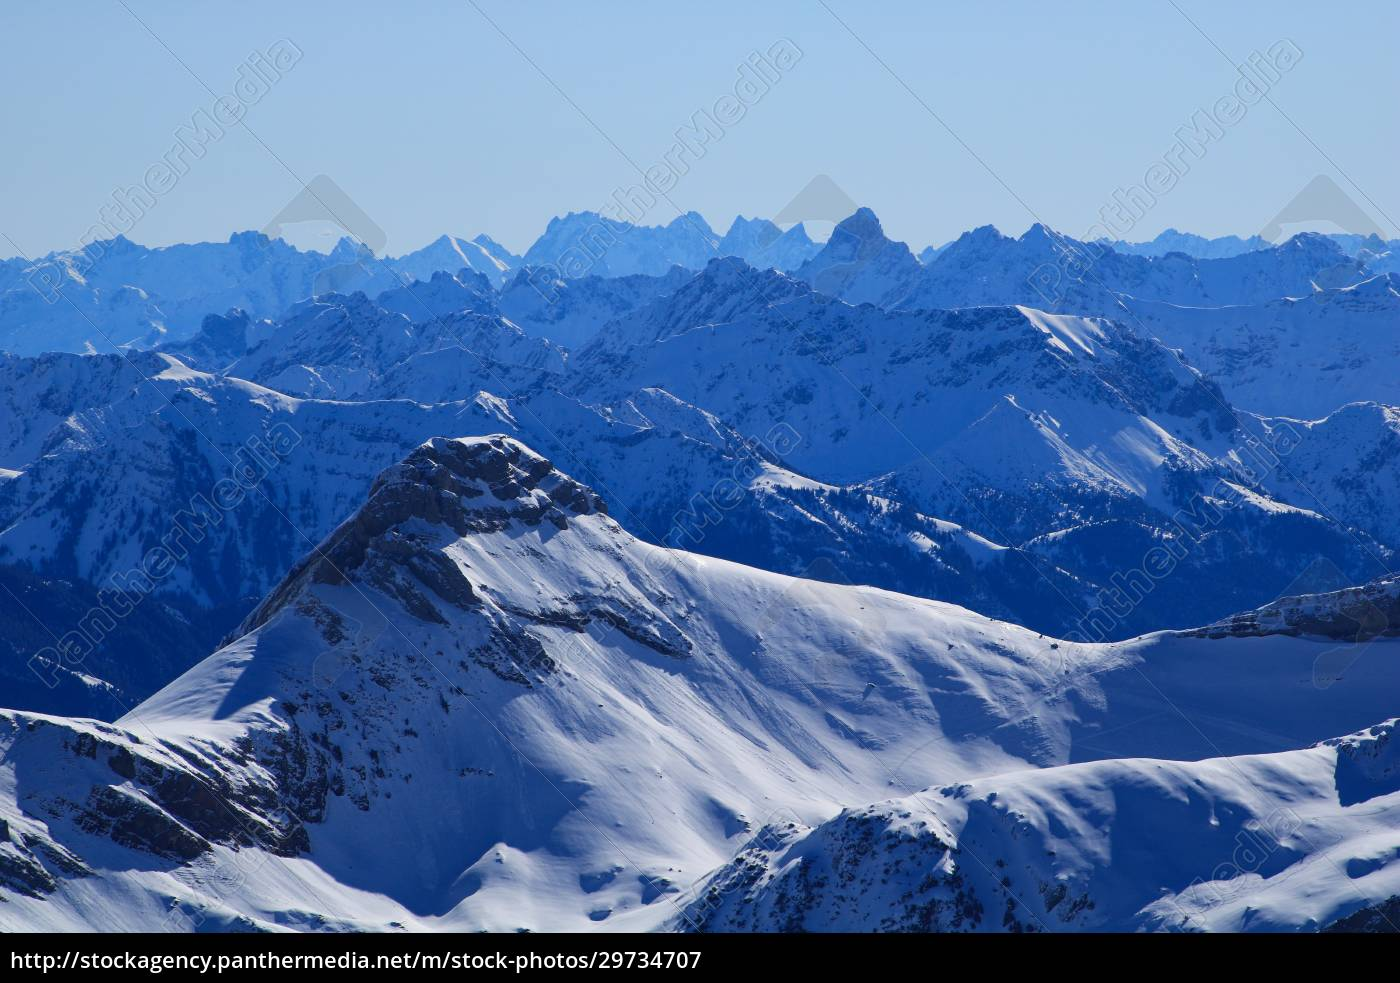 margelchopf, and, other, mountains, in, winter. - 29734707